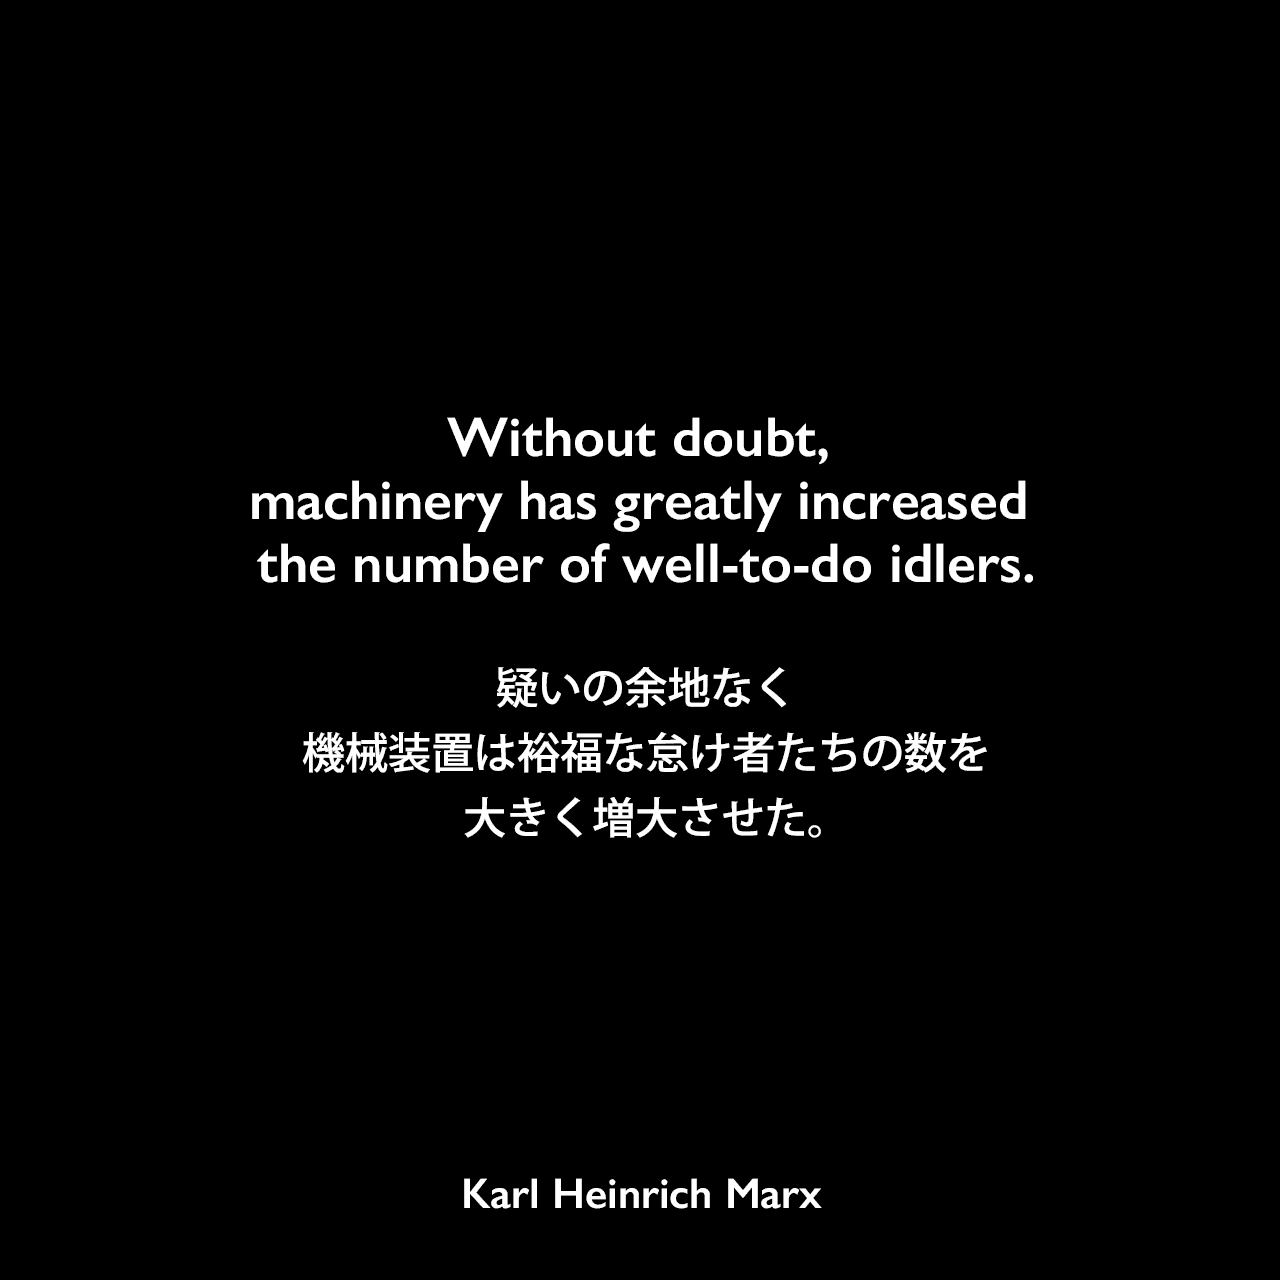 Without doubt, machinery has greatly increased the number of well-to-do idlers.疑いの余地なく、機械装置は裕福な怠け者たちの数を大きく増大させた。Karl Heinrich Marx